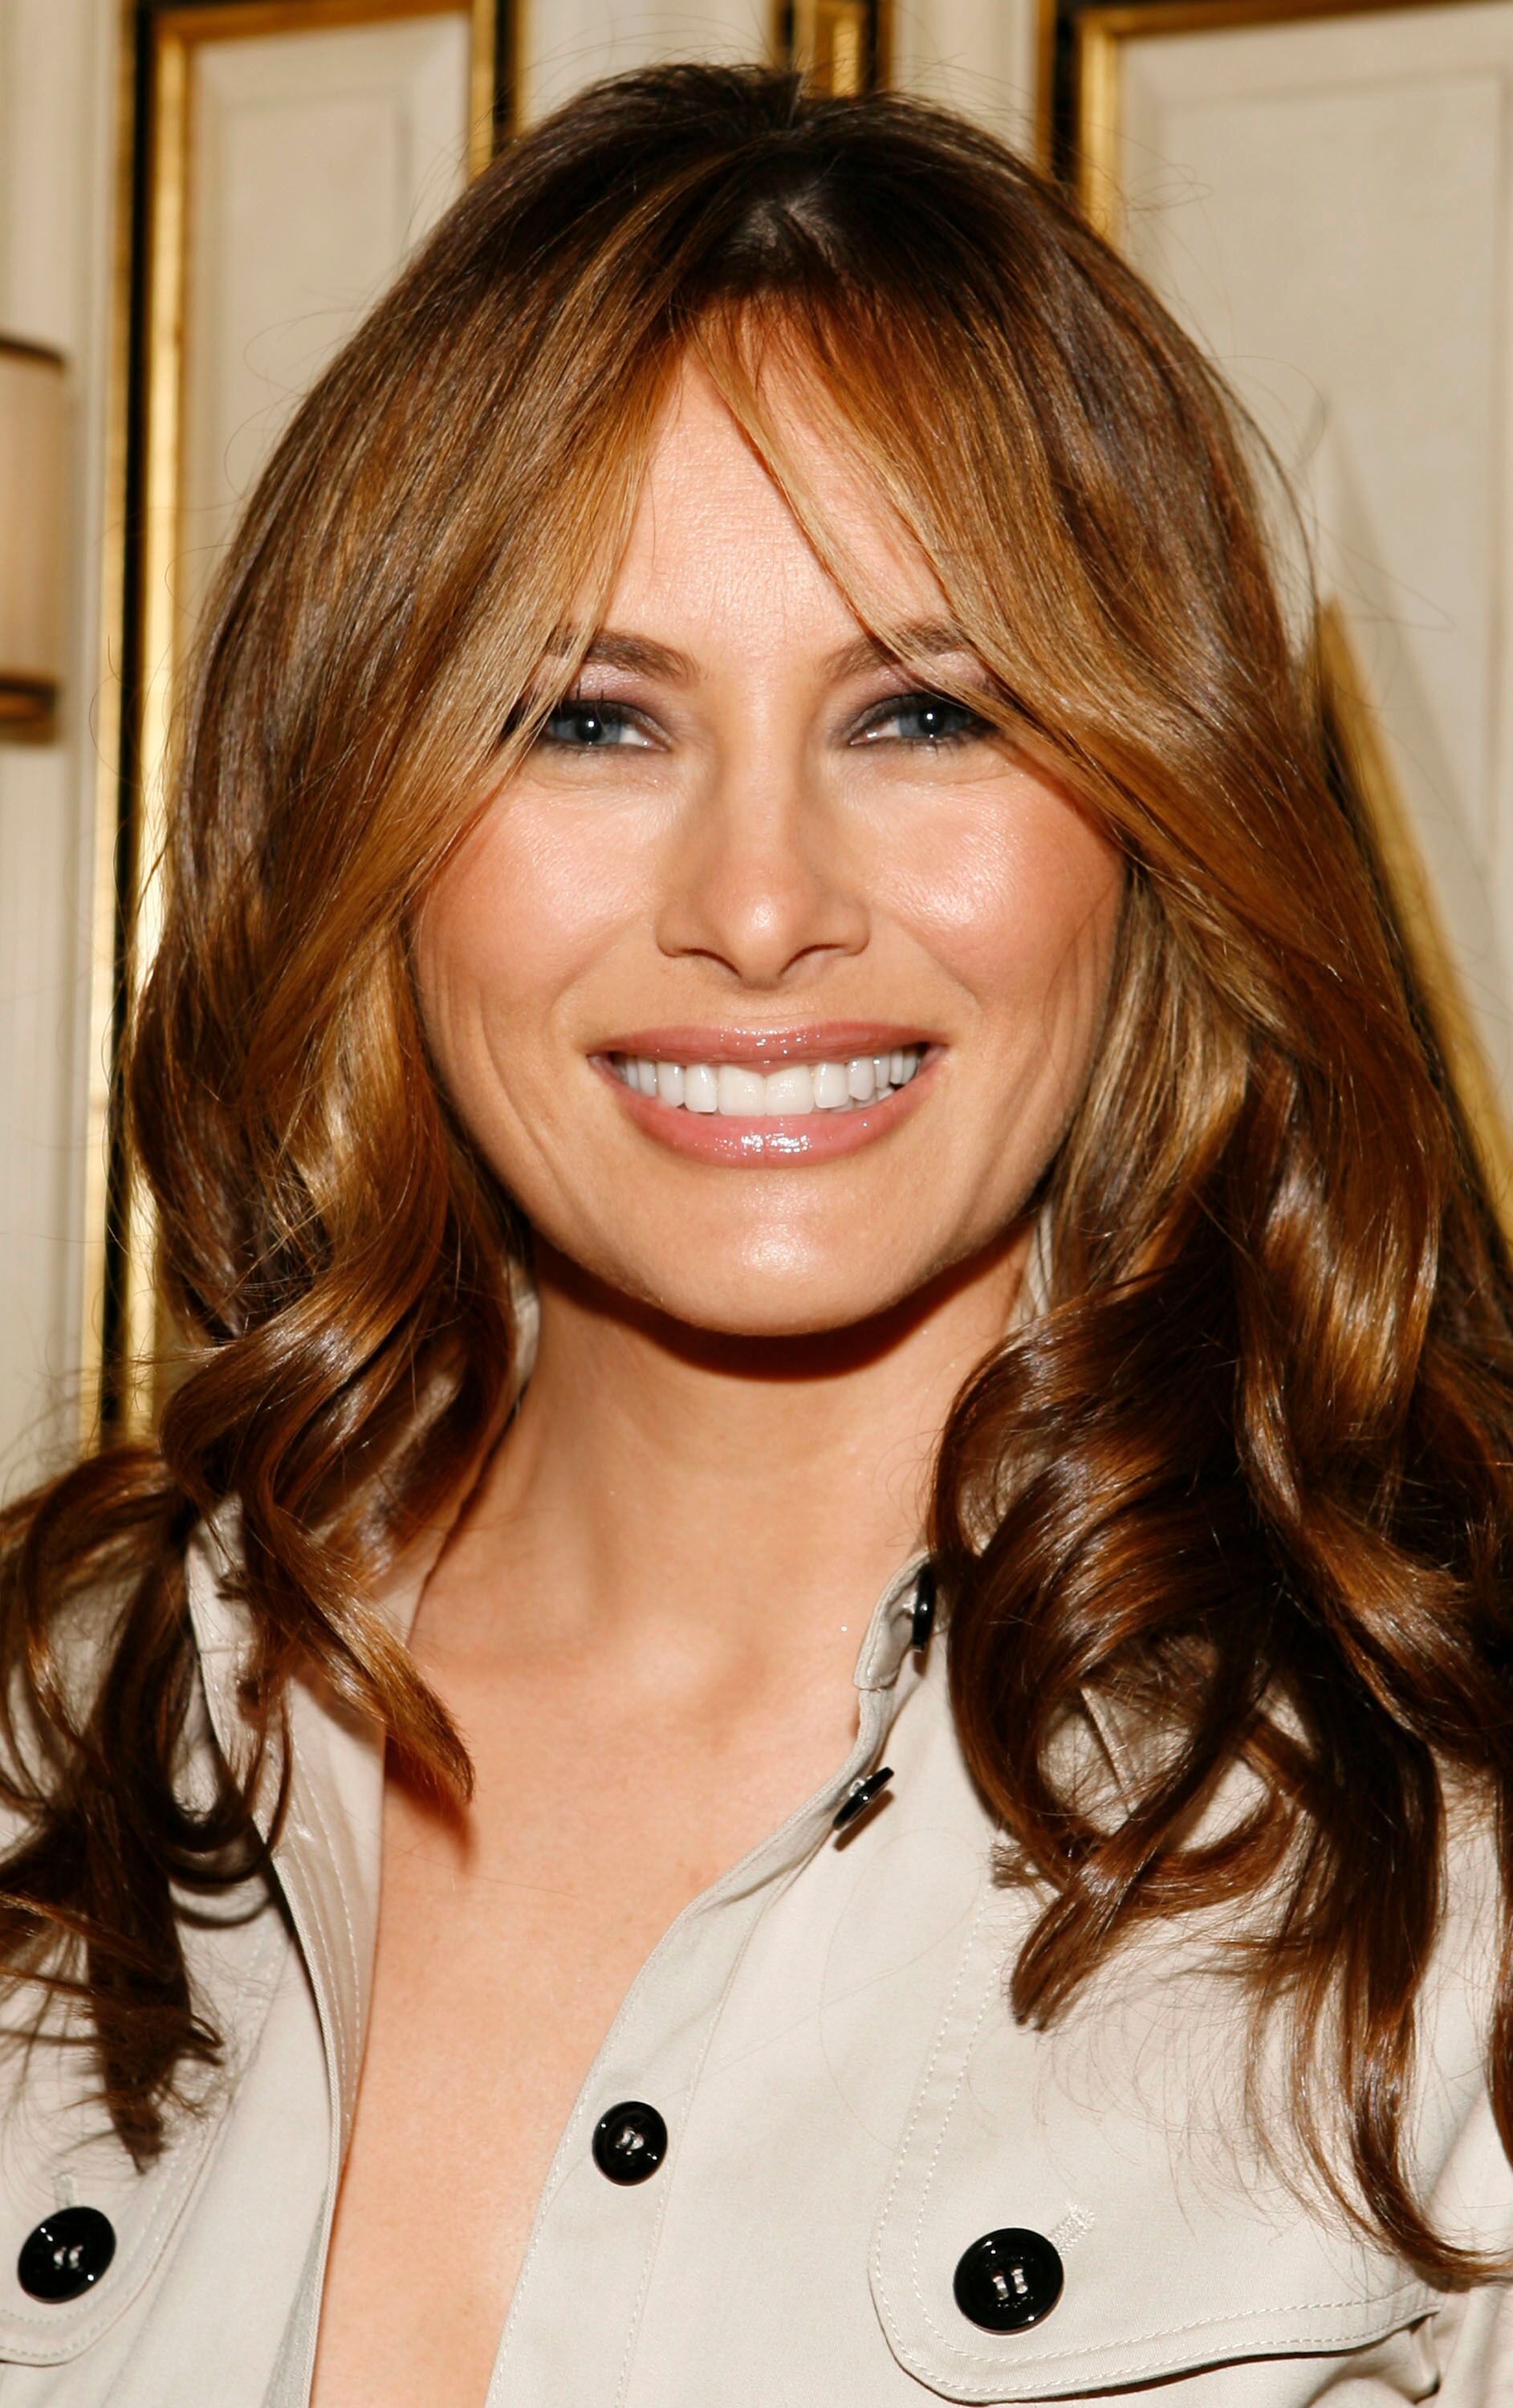 Melania Trump assiste à la conférence Best & Co.  à Bergdorf Goodman le 12 avril 2007 à New York | Photo : Getty Images